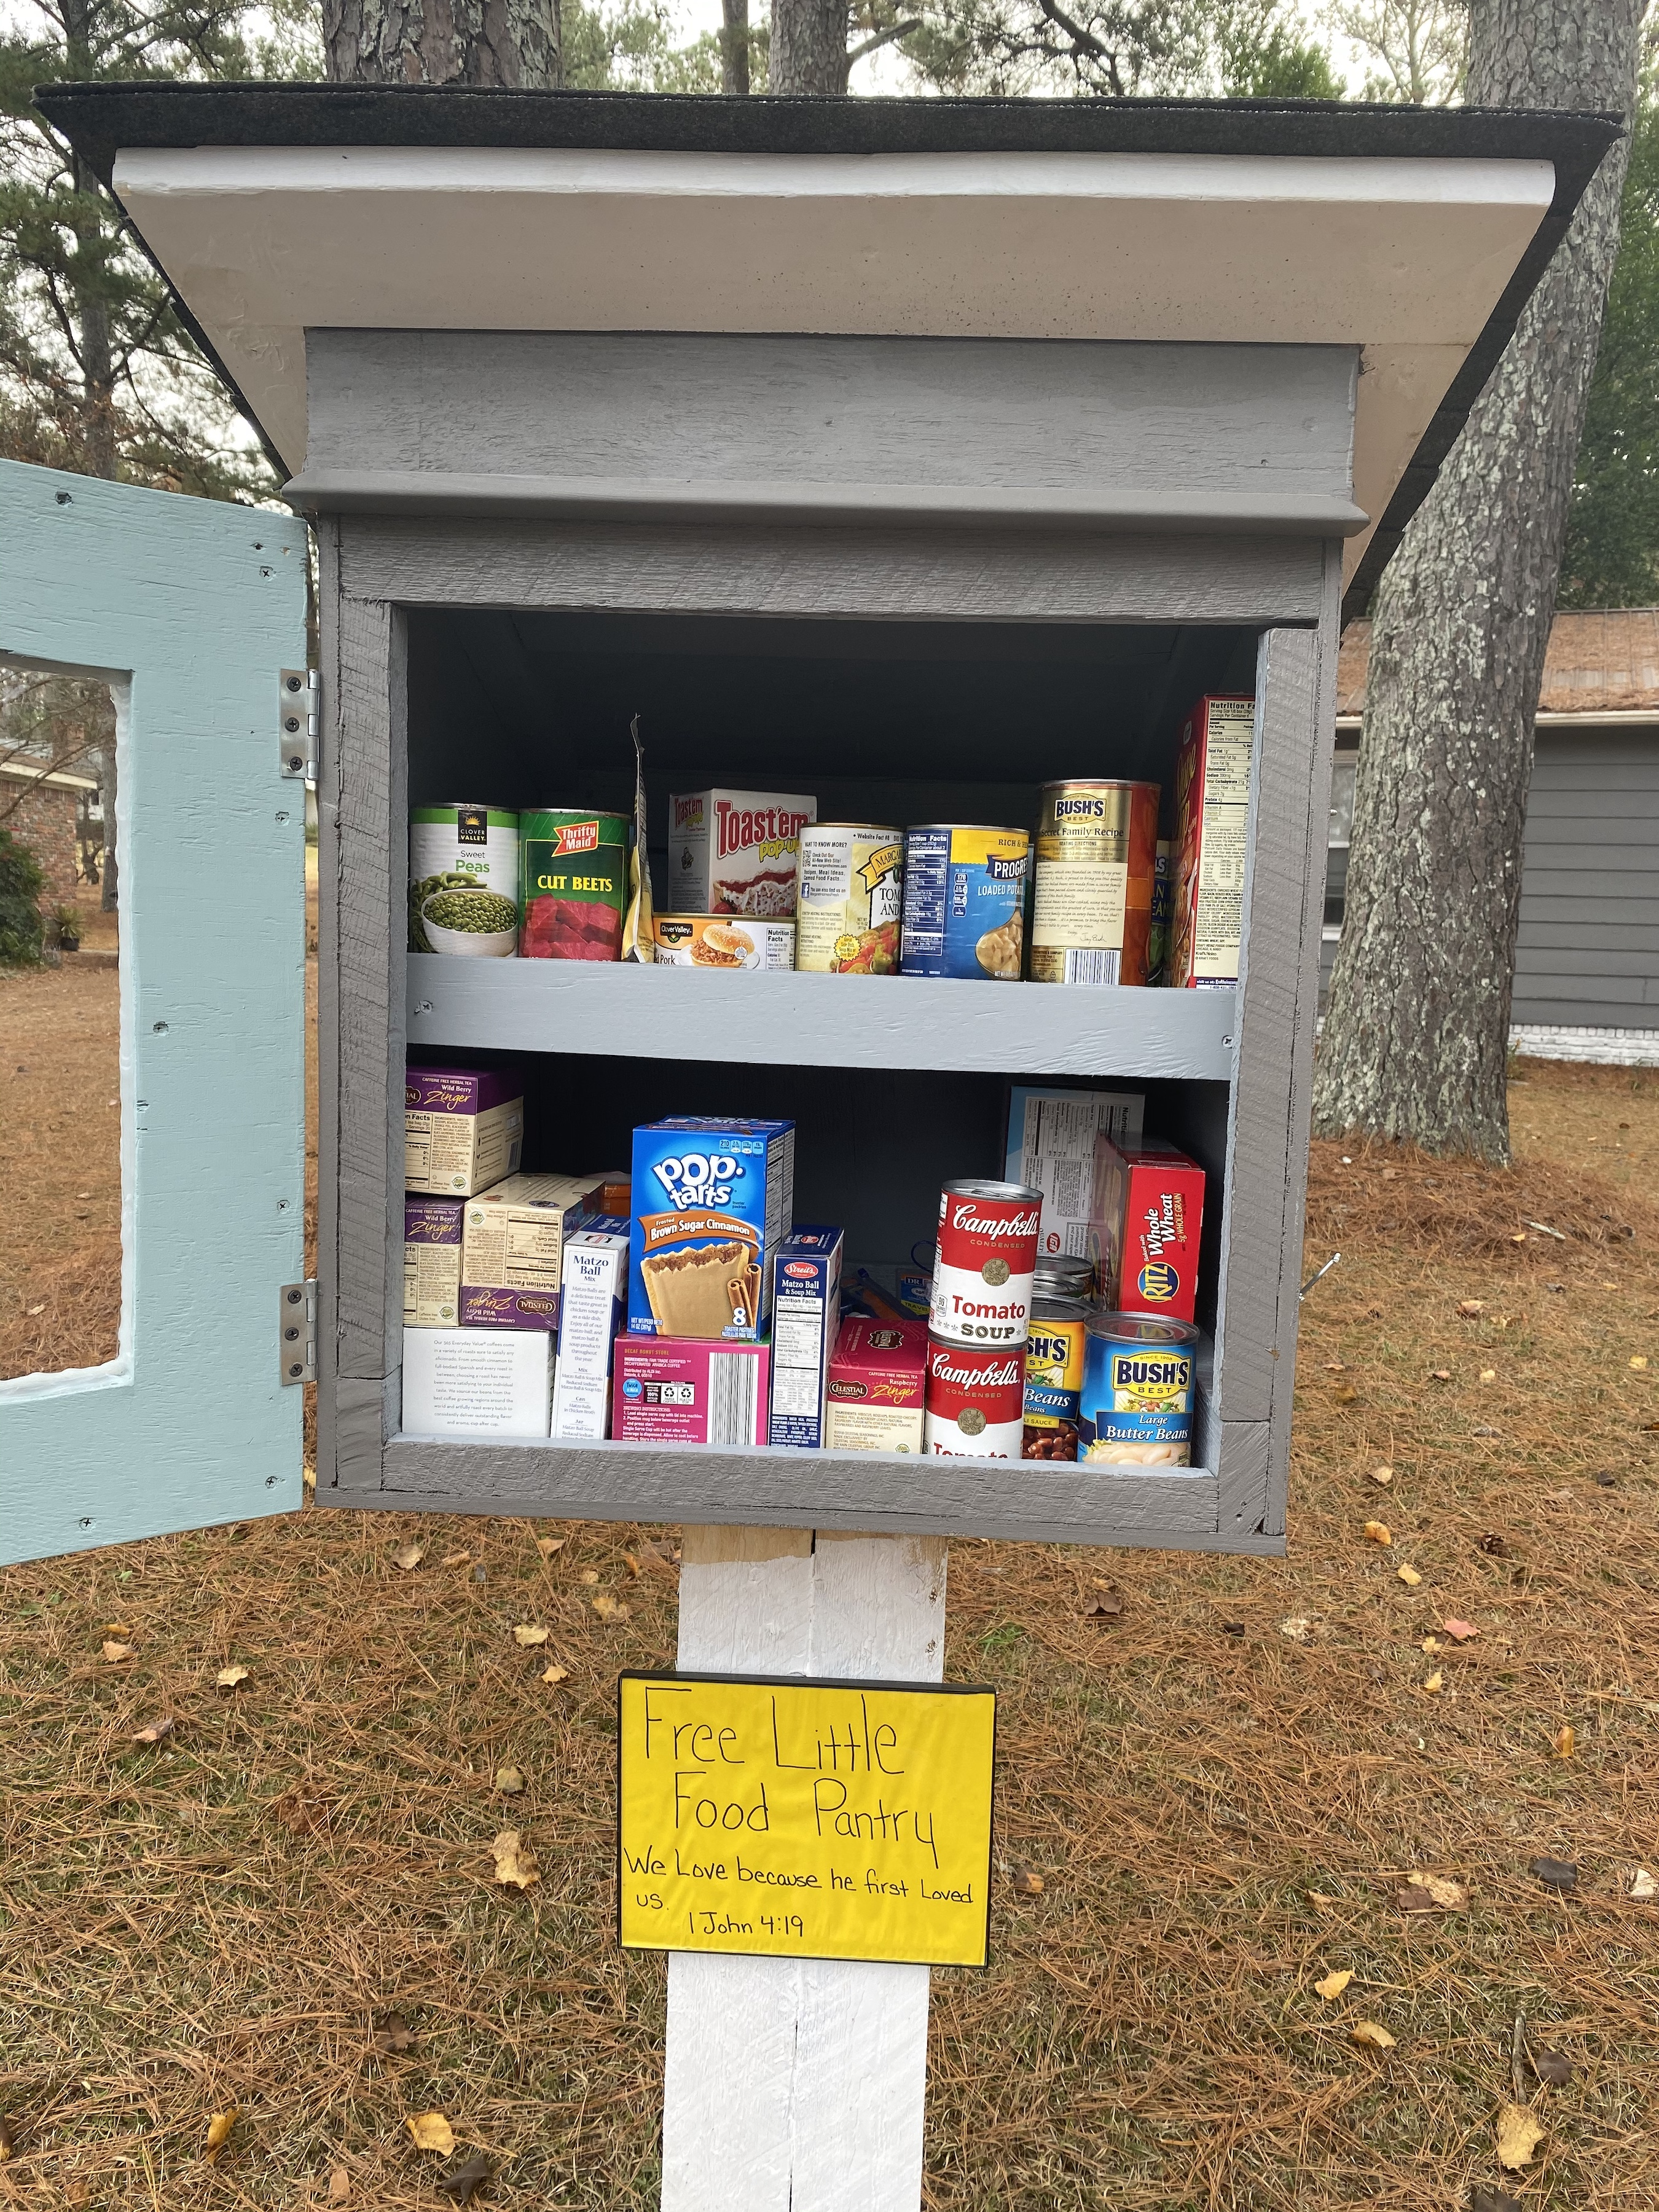 Free Little Food Pantry on Crestwood Dr. Photo 2